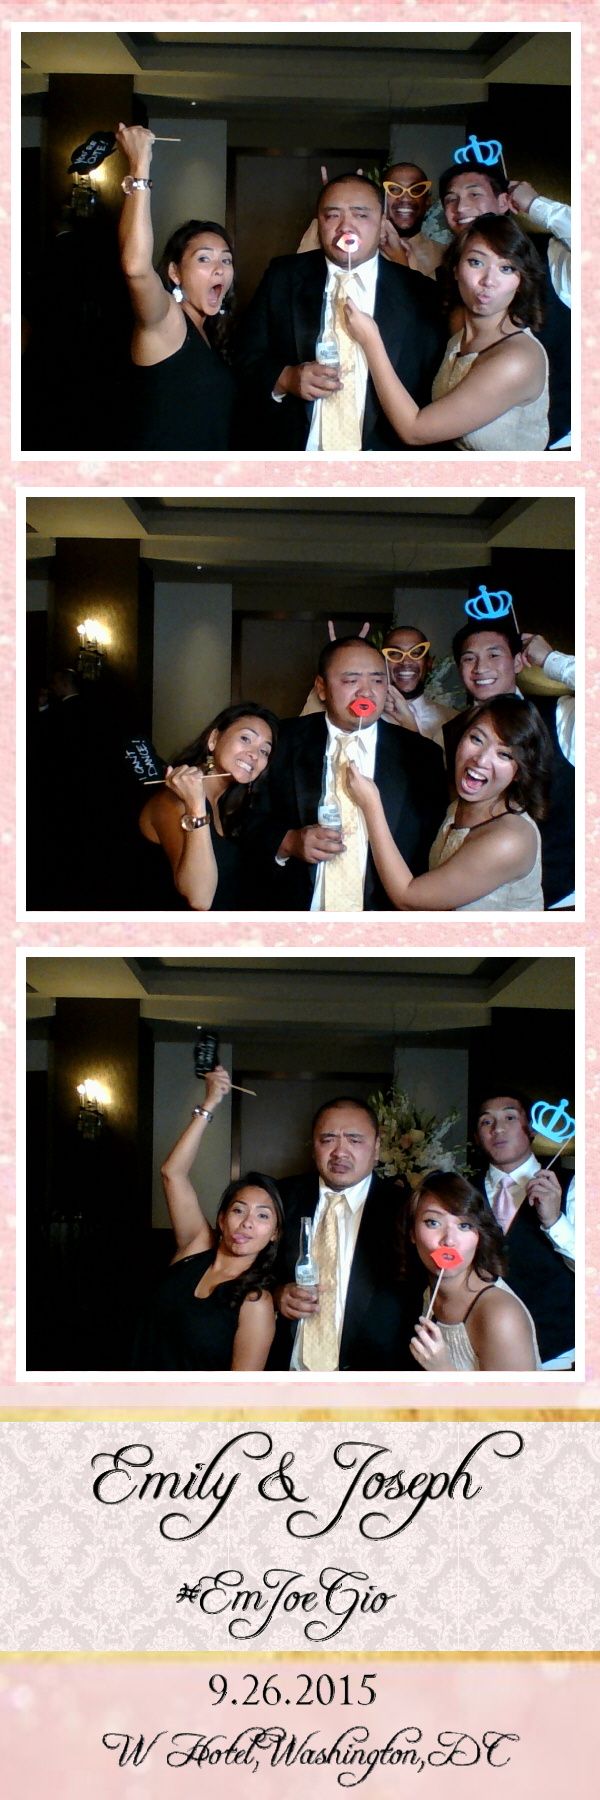 Guest House Events Photo Booth E&J (33).jpg